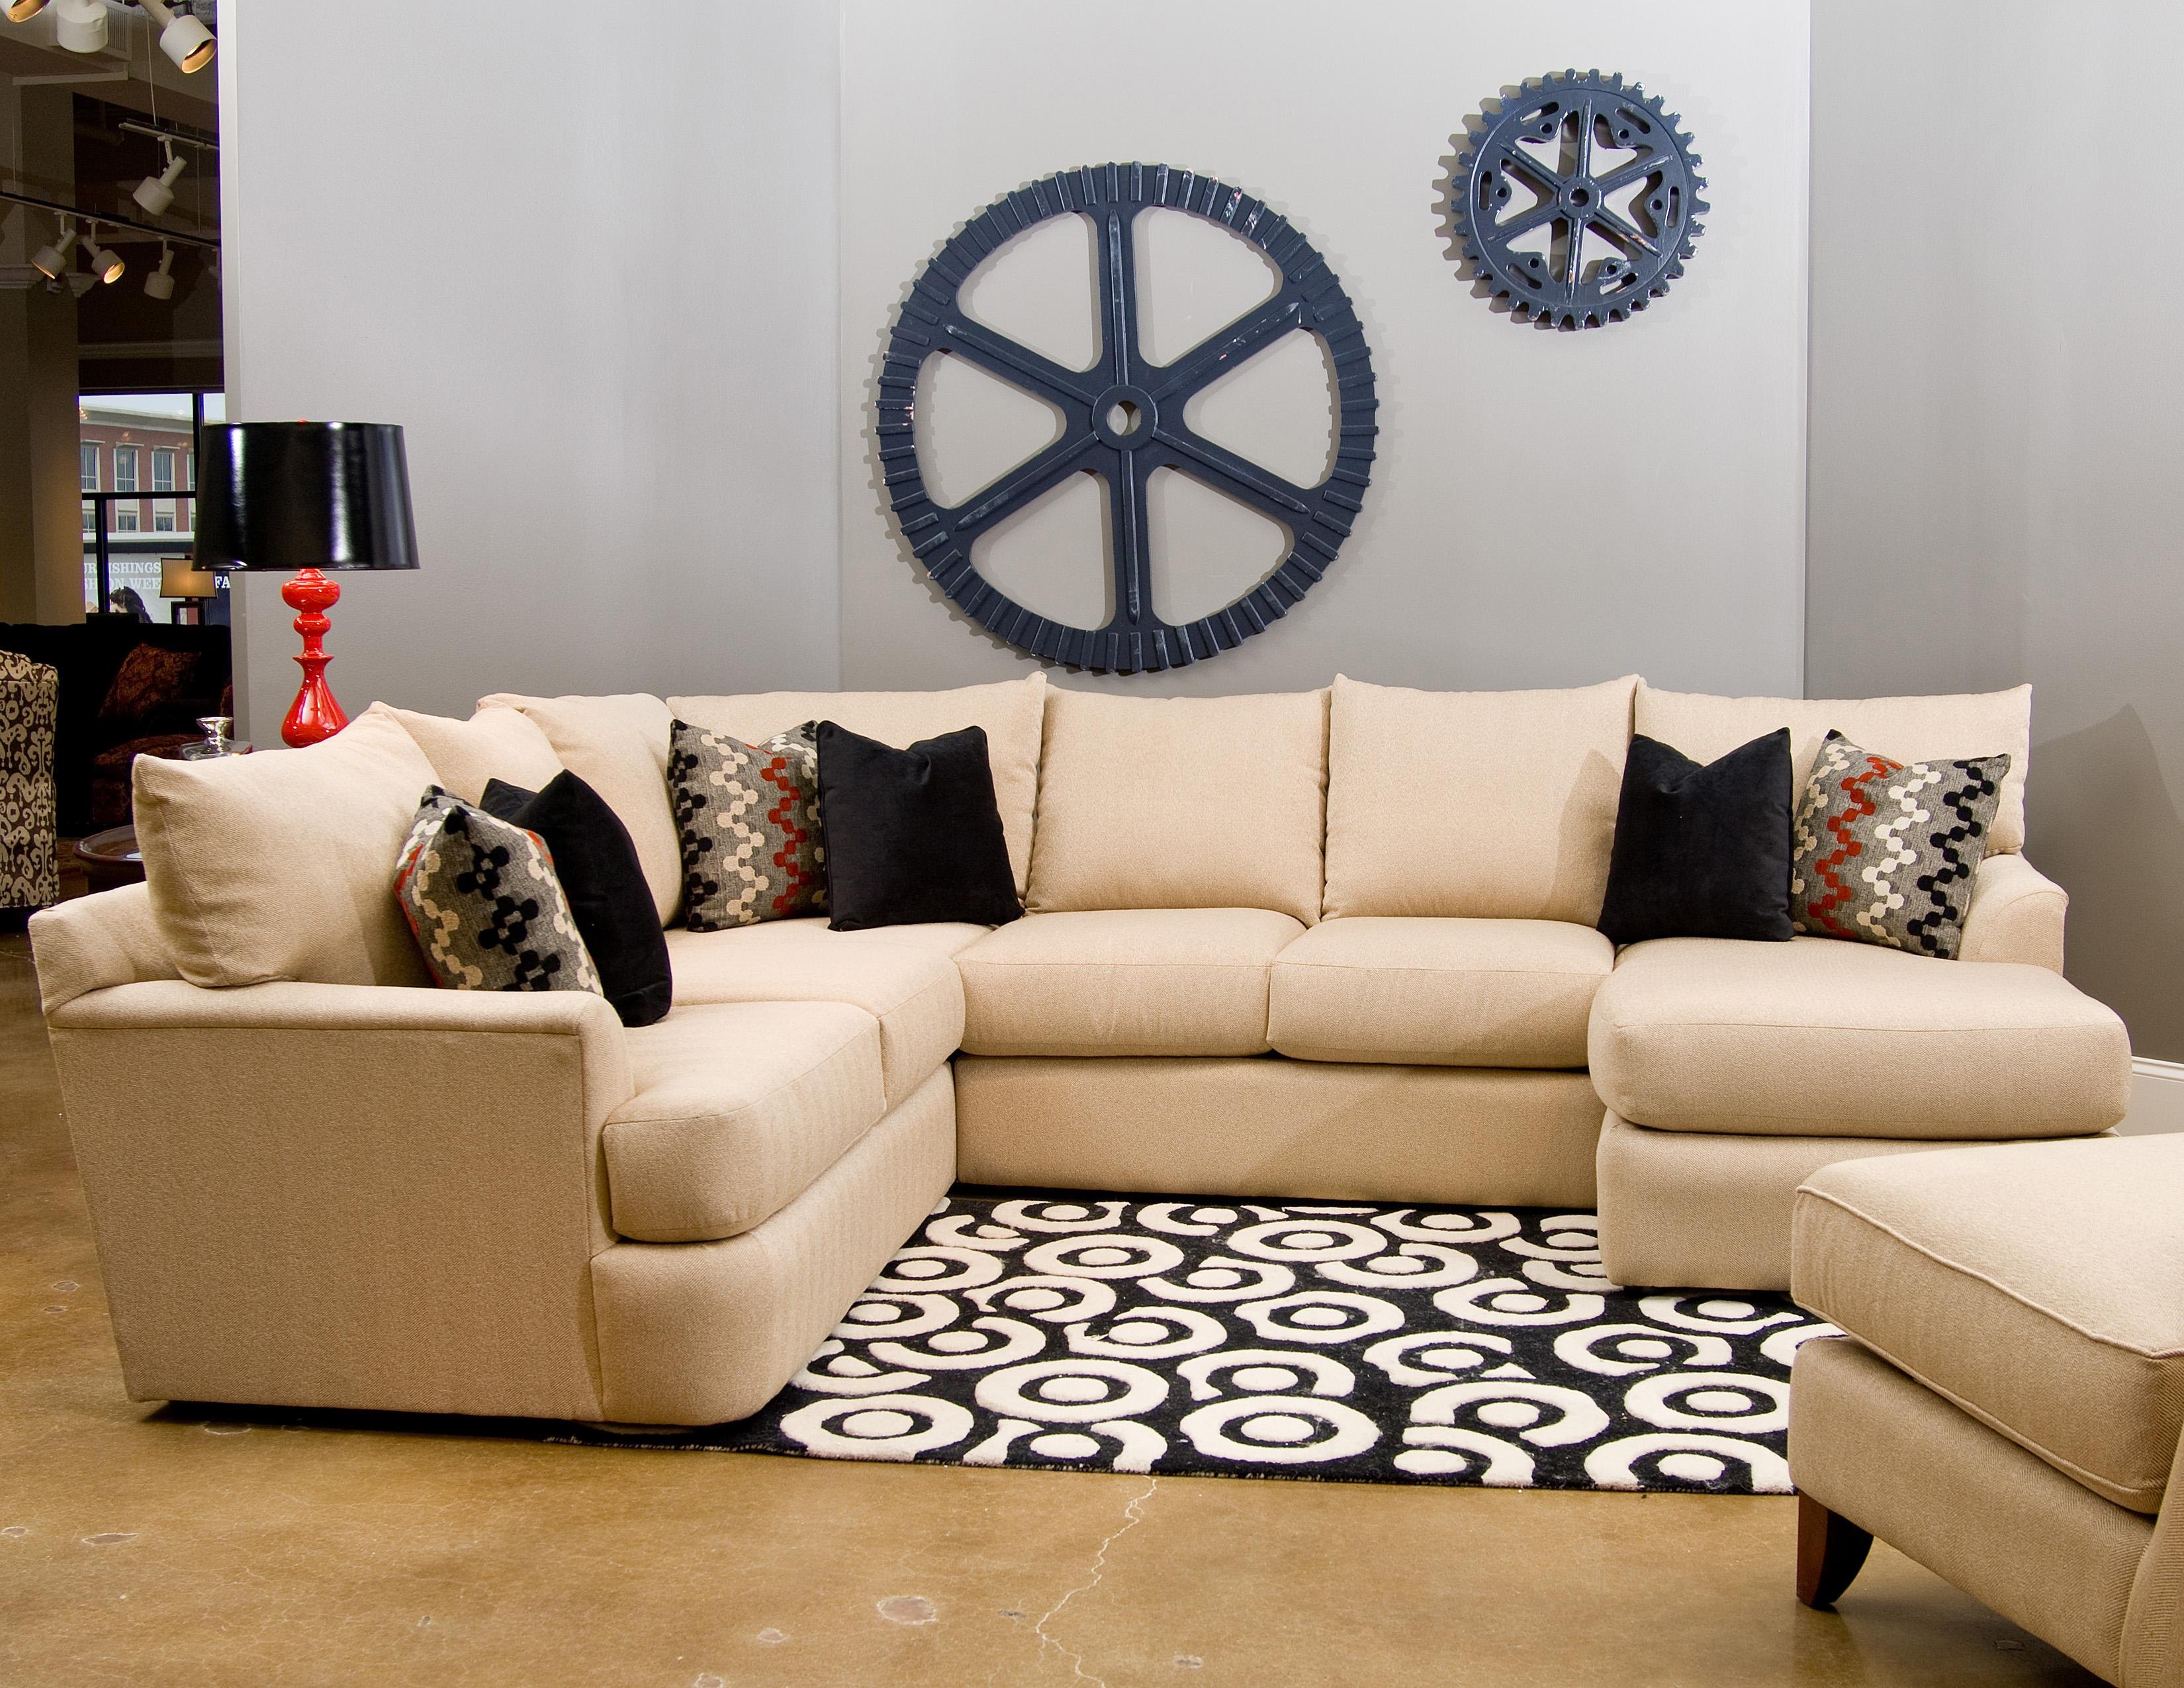 sectional rotmans sofa configurations pin couches loveseat ottoman benson chair multiple in couch